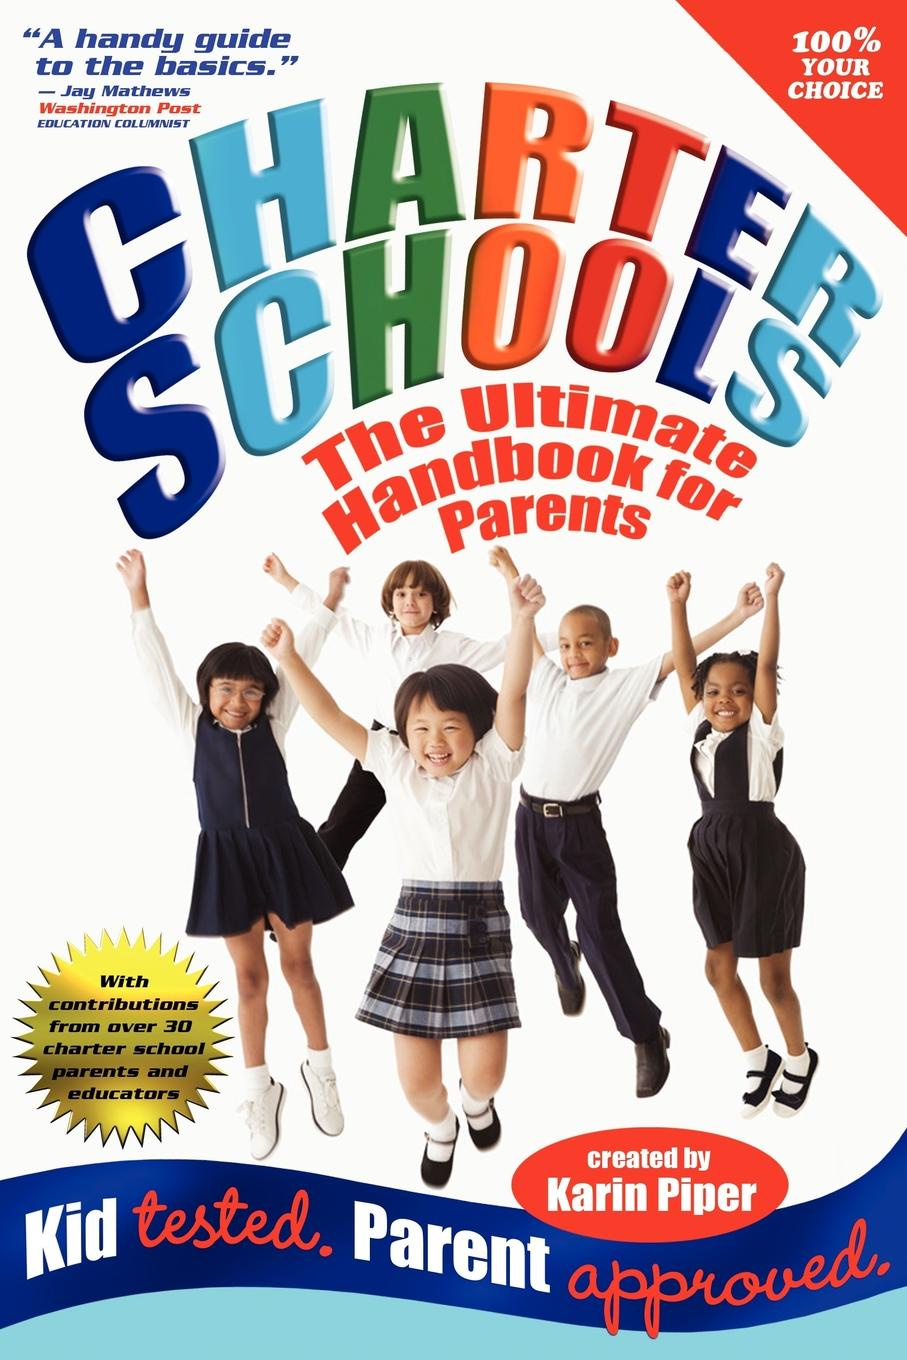 Karin Piper Charter Schools. The Ultimate Handbook for Parents janet d mulvey bruce s cooper arthur t maloney blurring the lines charter public private and religious schools come together